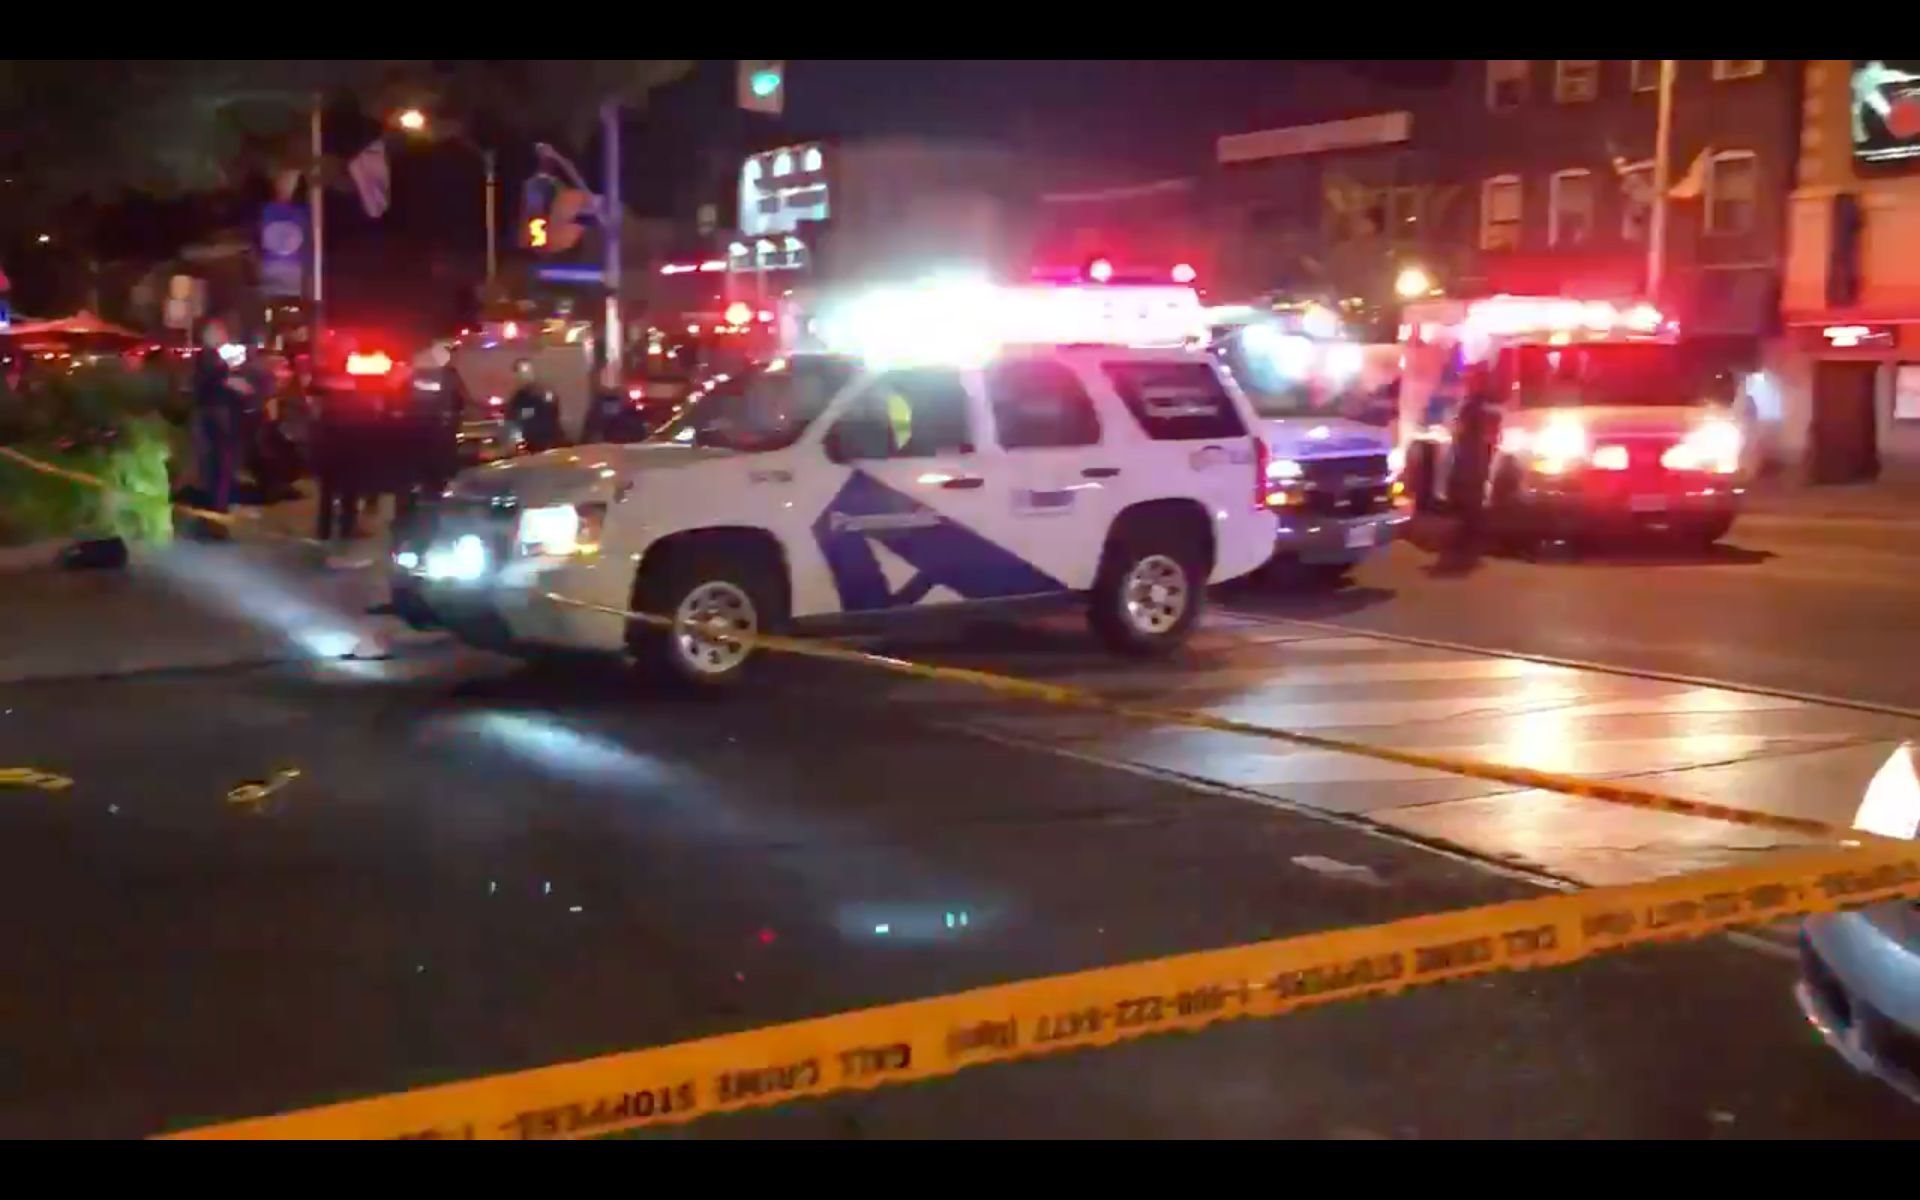 At Least 1 Dead, 9 Others Injured In Toronto Shooting